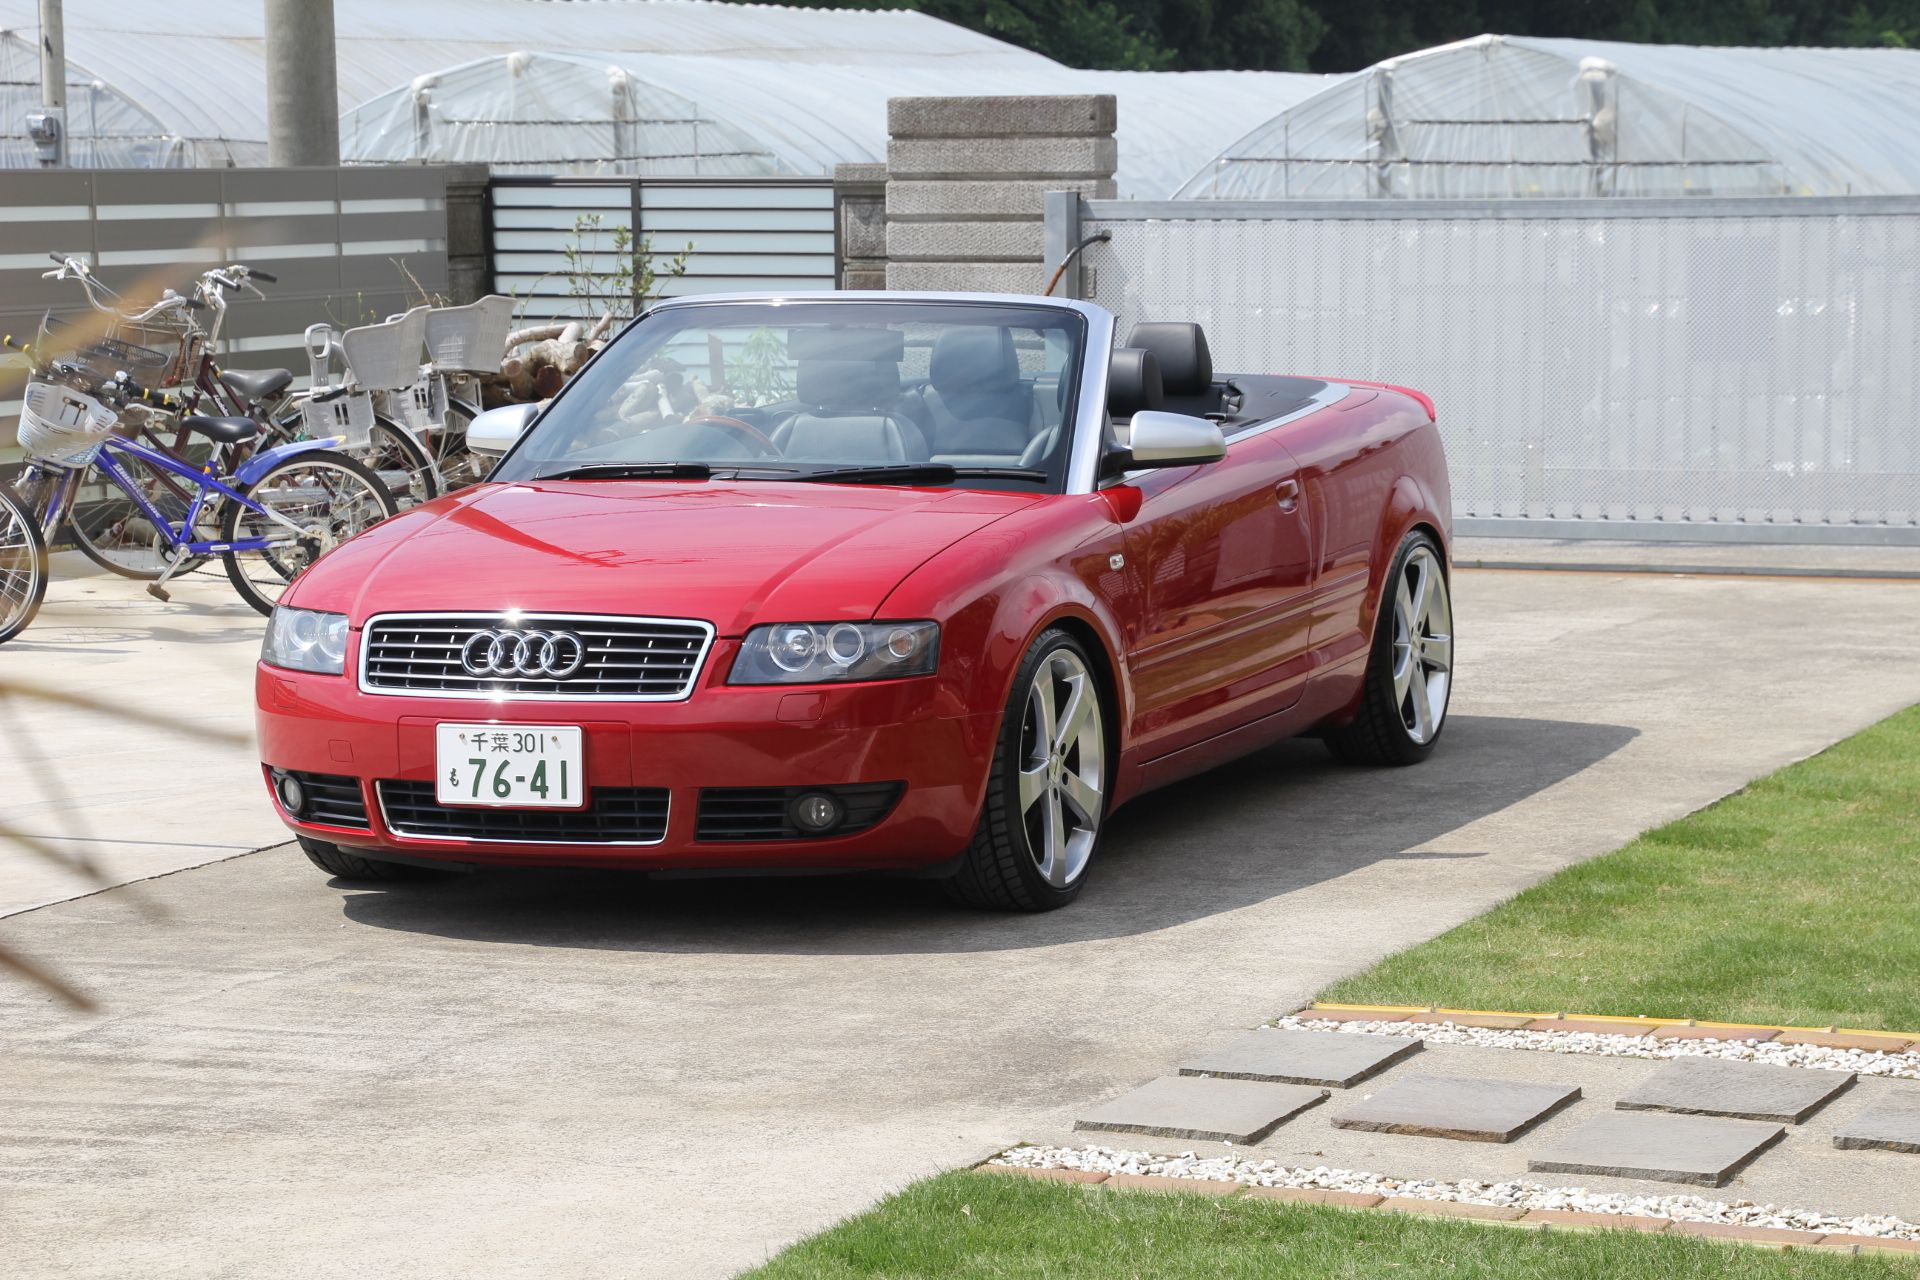 2004 audi going back to japanese used car auctions after having a smashed windscreen